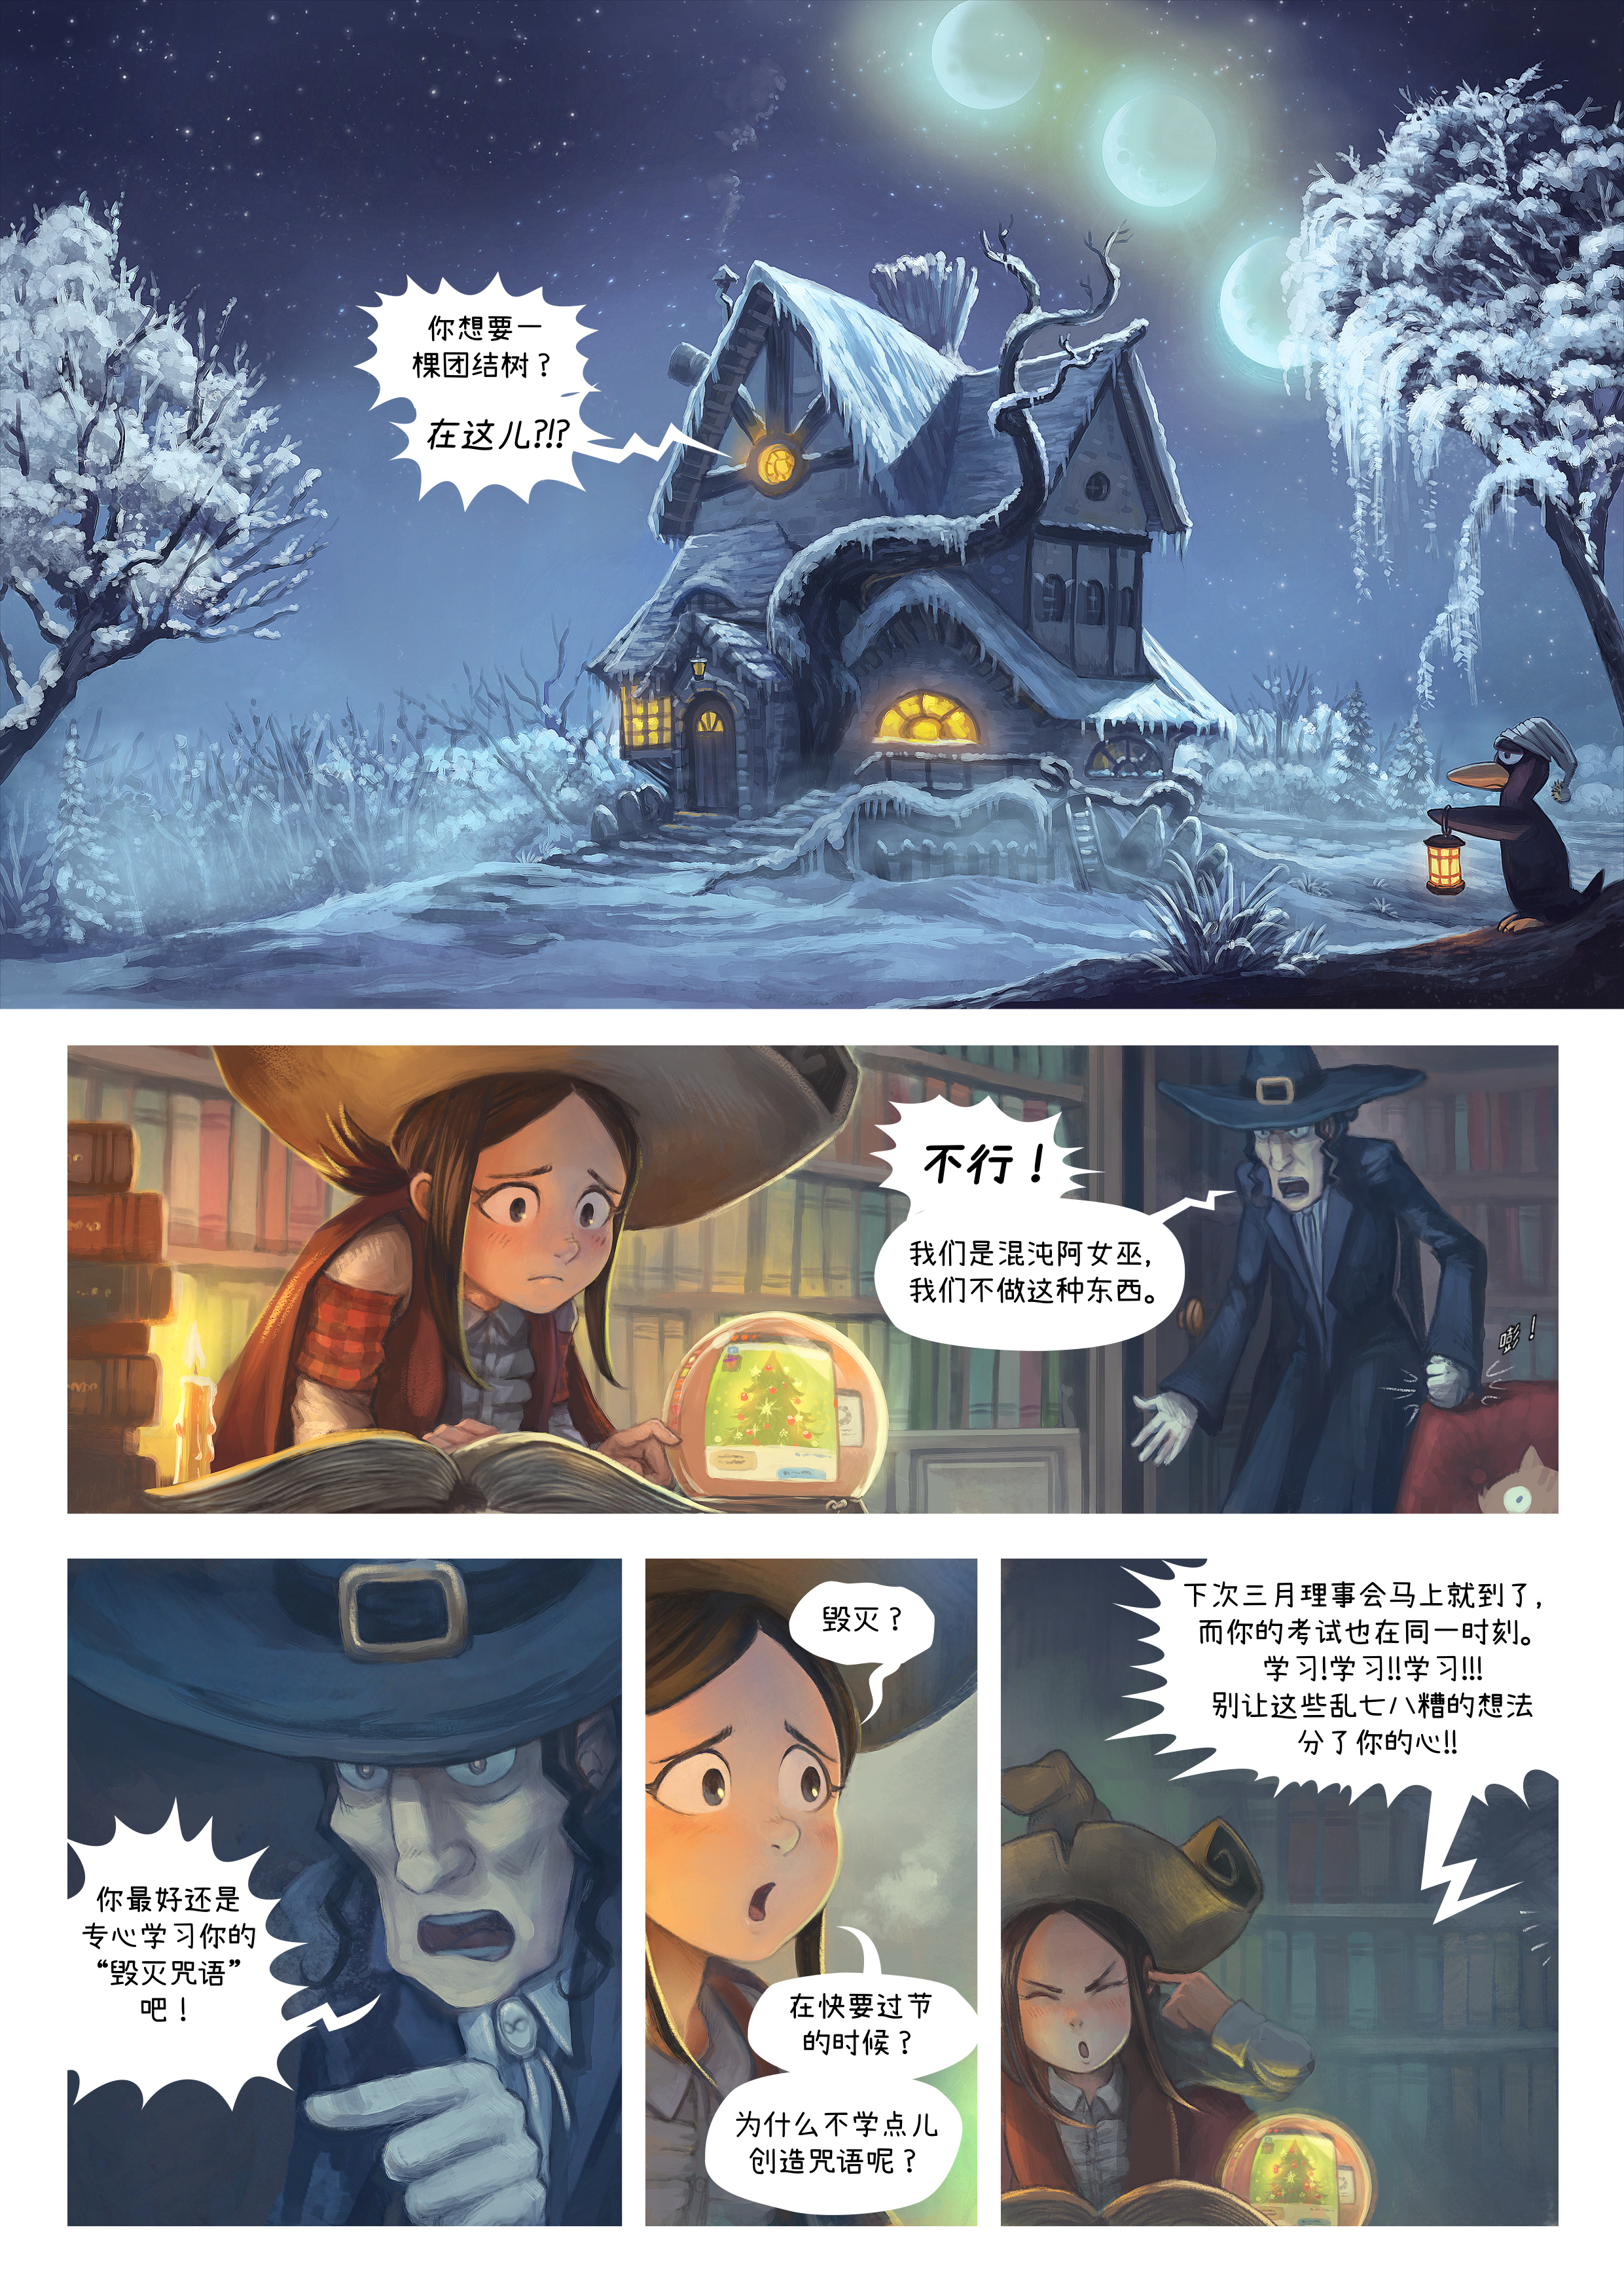 A webcomic page of Pepper&Carrot, 漫画全集 24 [cn], 页面 1